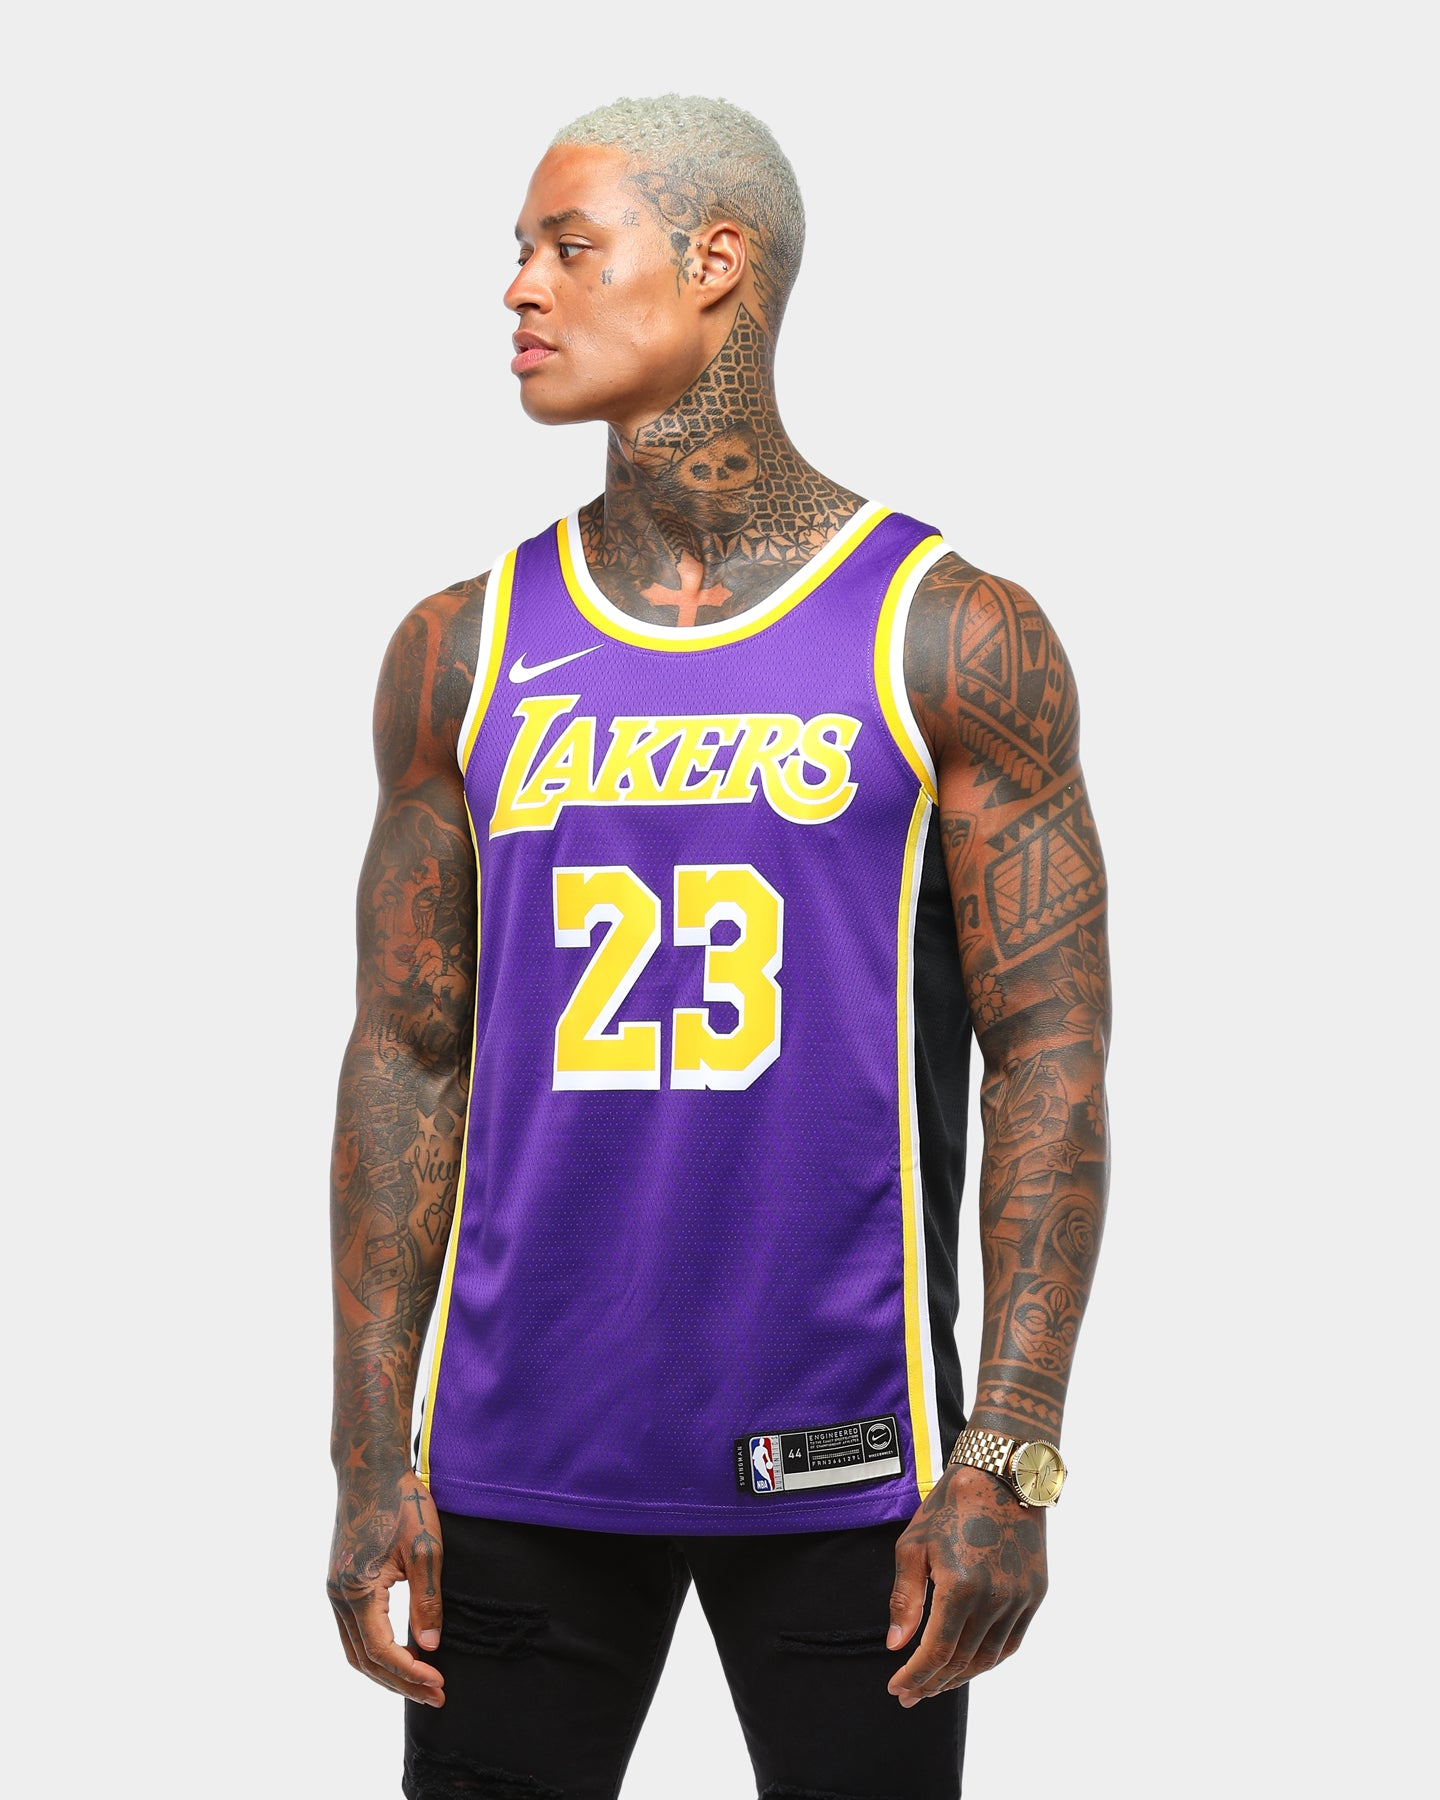 Nike Los Angeles Lakers LEBRON JAMES #23 Swingman Jersey PurpleYellowBlack